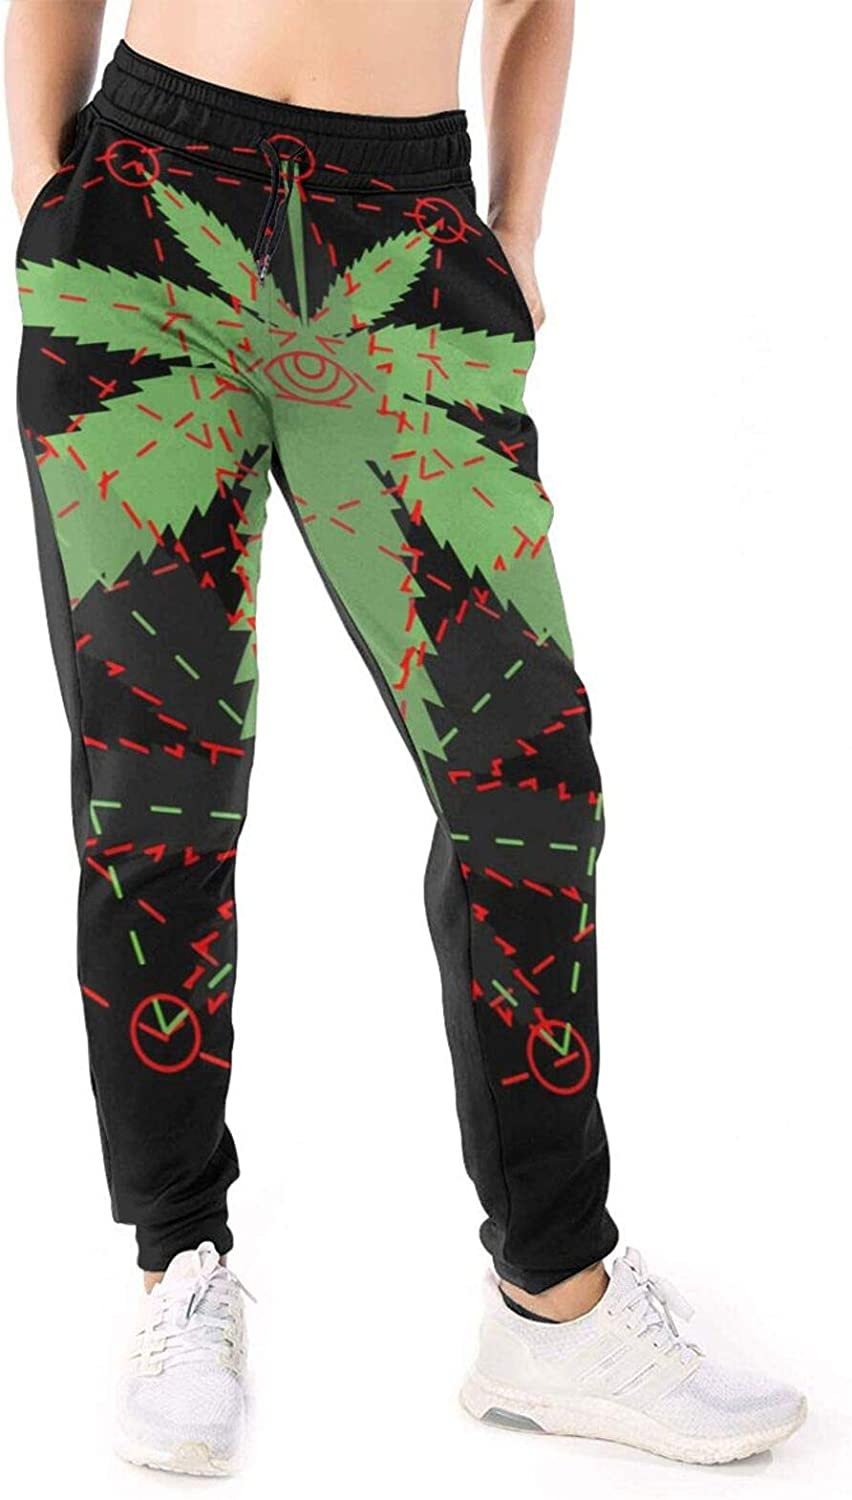 LONEA Women Joggers Pants Weed with The Illumination Athletic Sweatpants with Pockets Casual Trousers Baggy